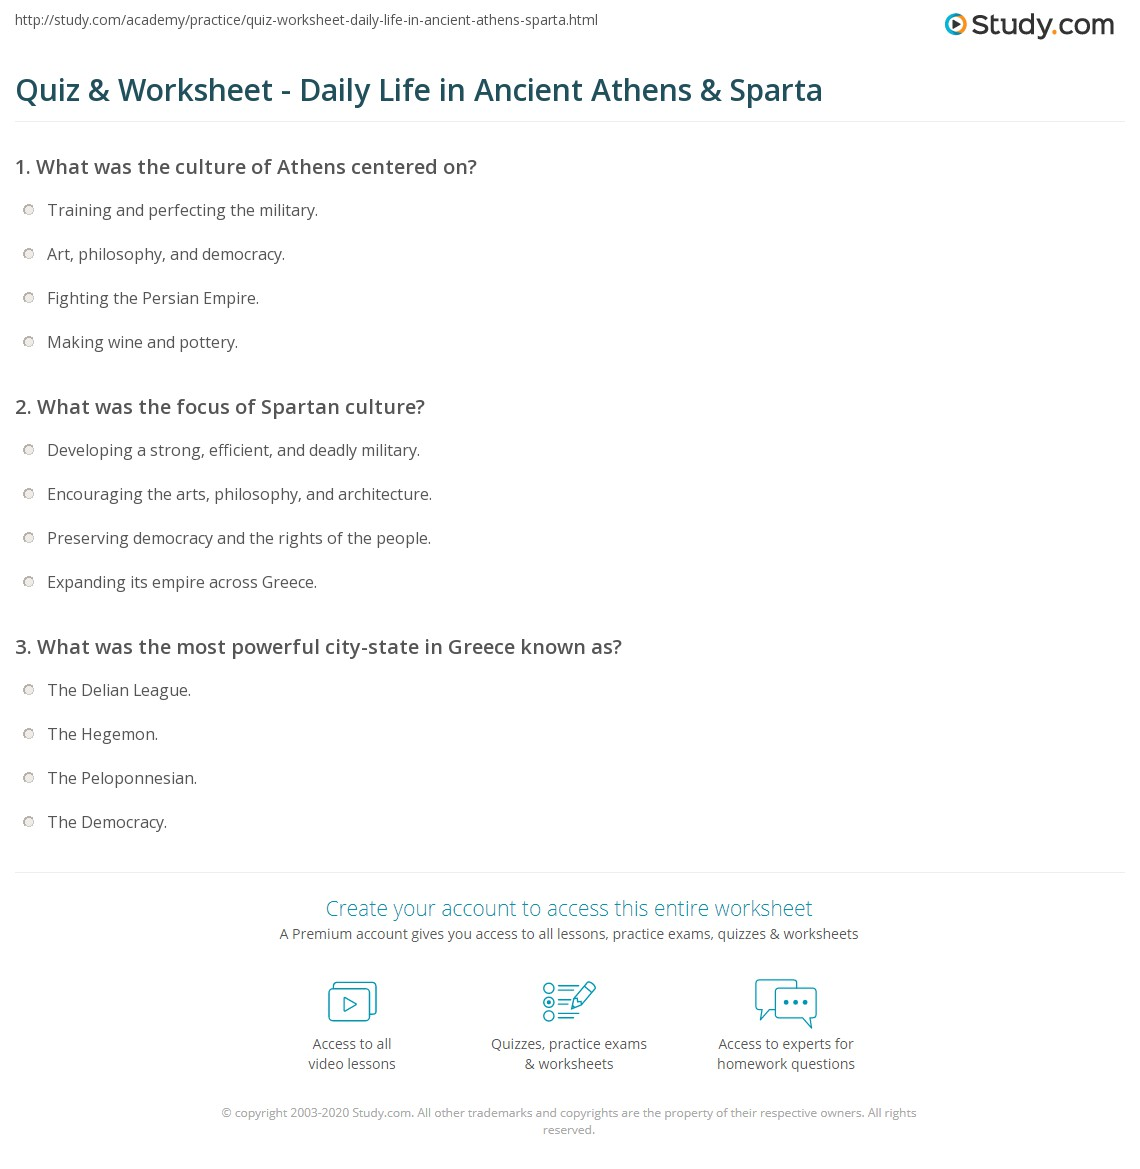 quiz worksheet daily life in ancient athens sparta. Black Bedroom Furniture Sets. Home Design Ideas